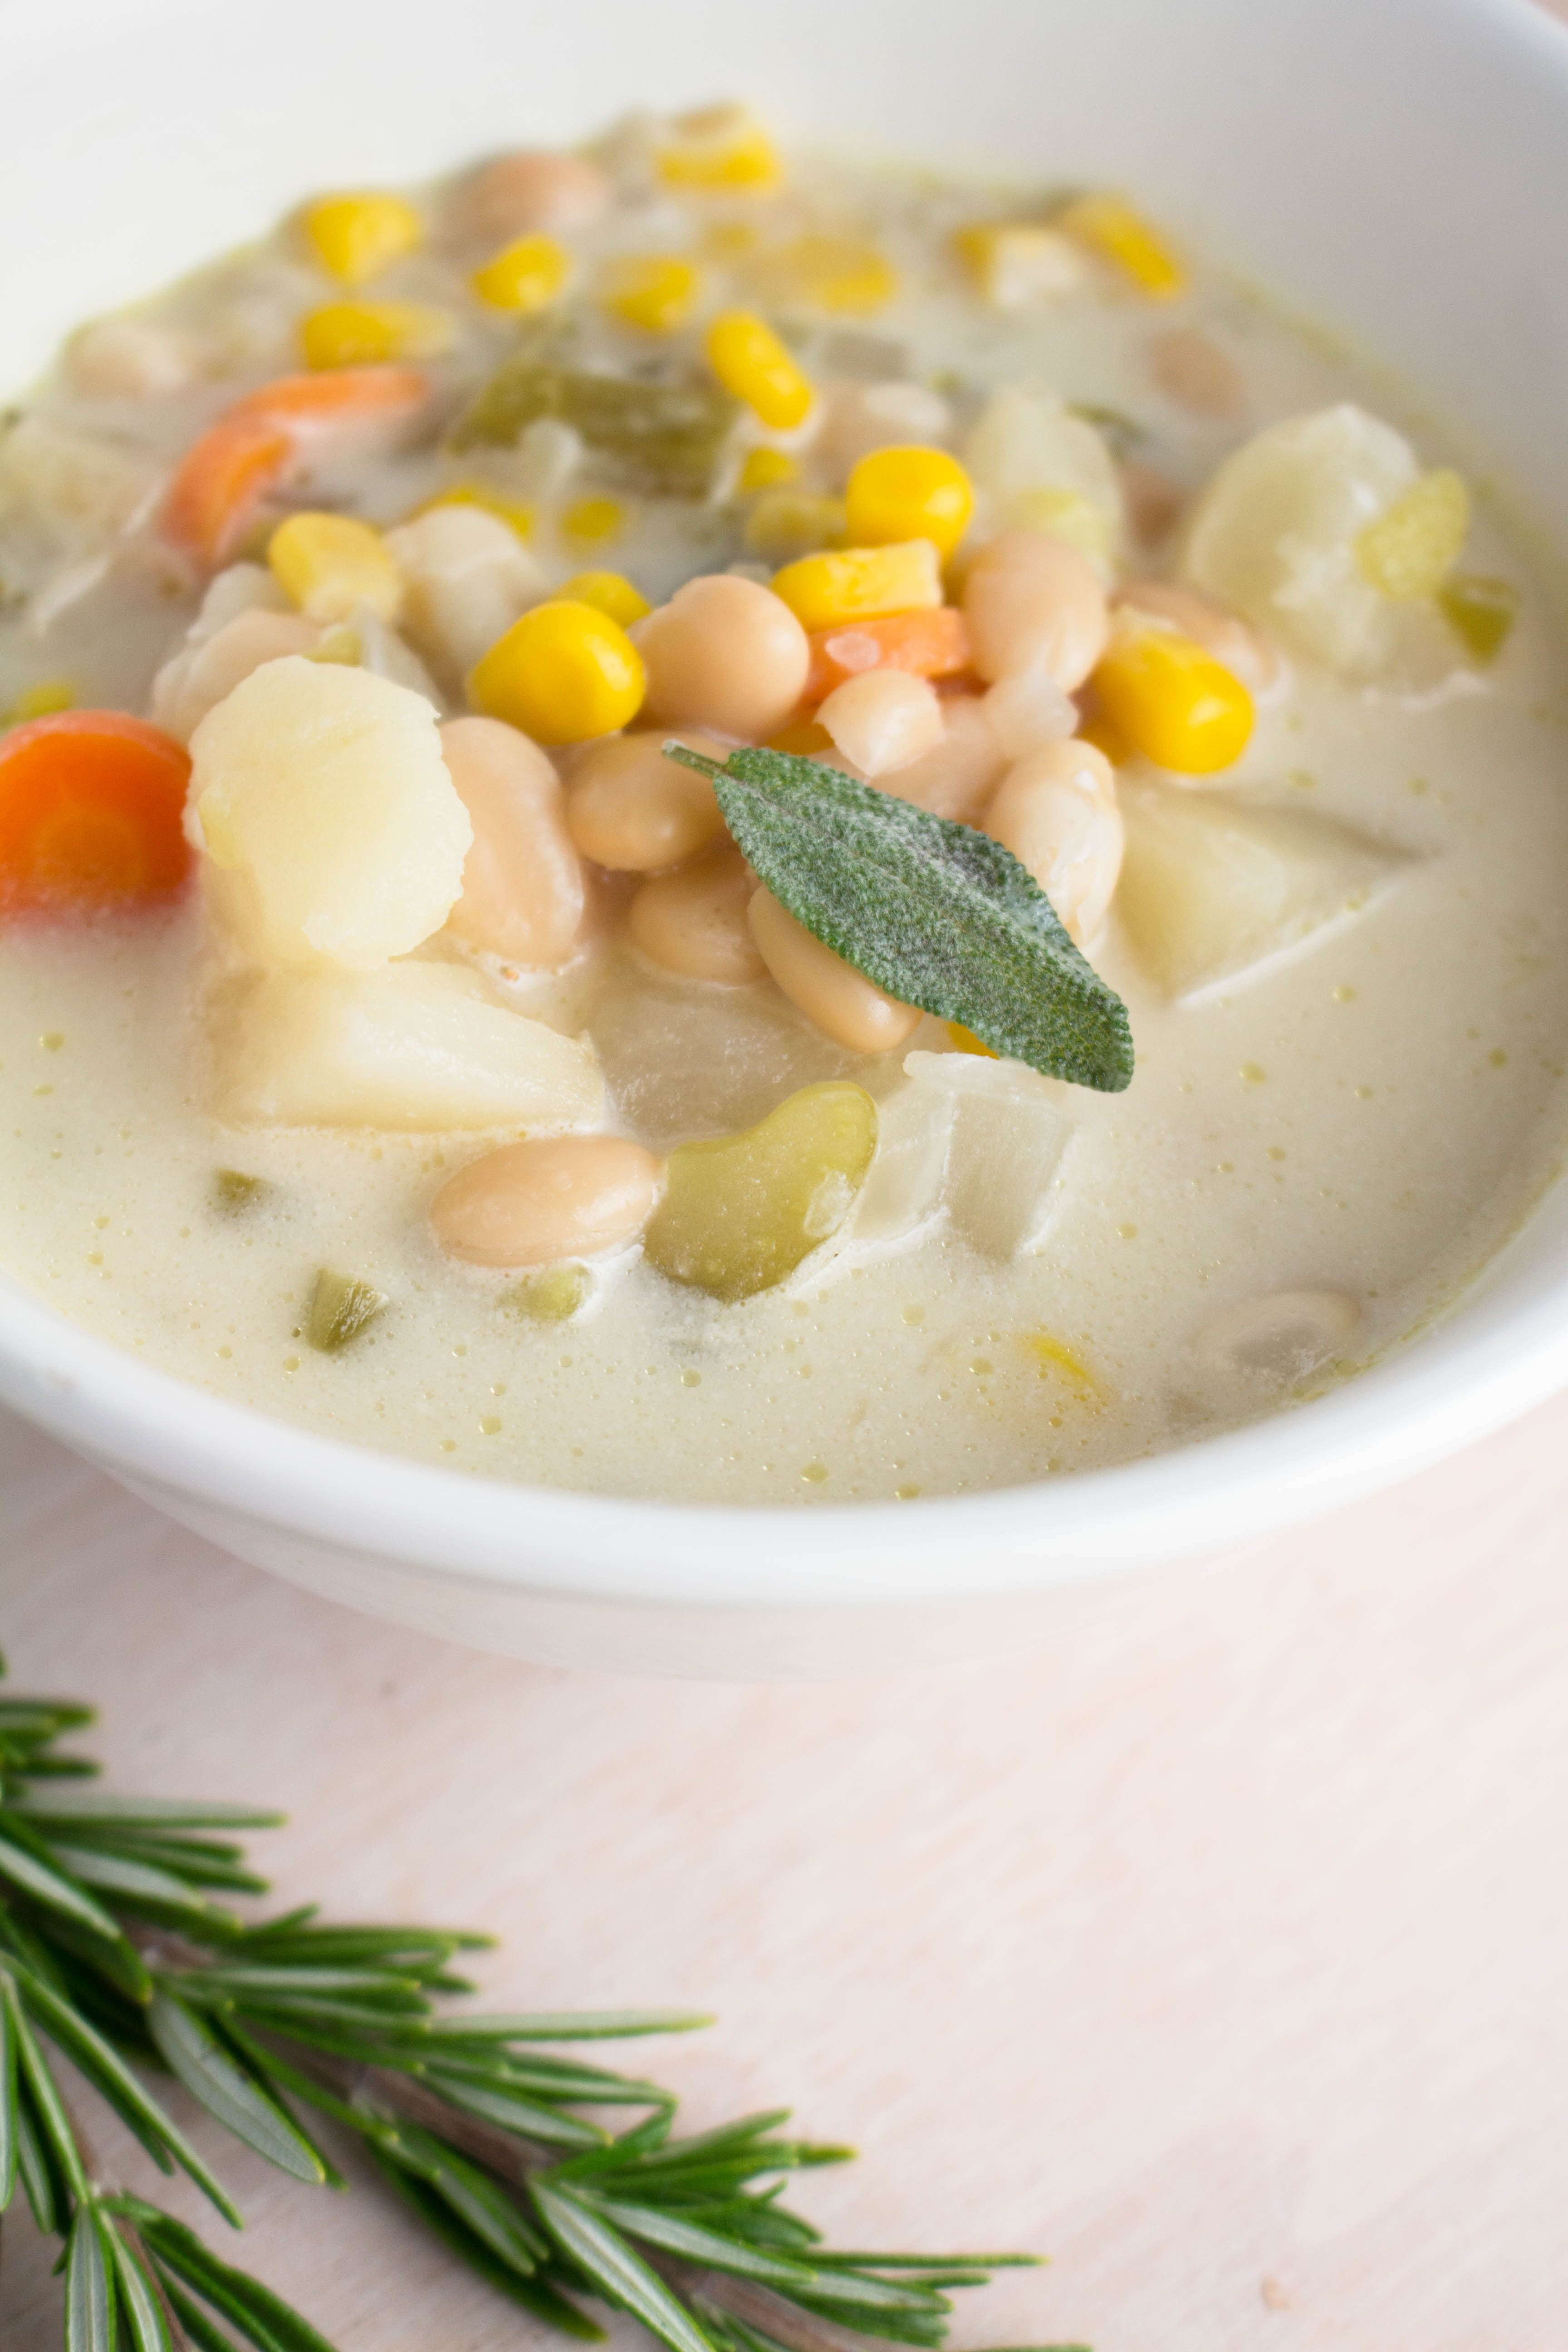 Corn and Potato Chowder - this soup is creamy yet chunky with a sweet taste of corn! mmm, recipe at Krollskorner.com